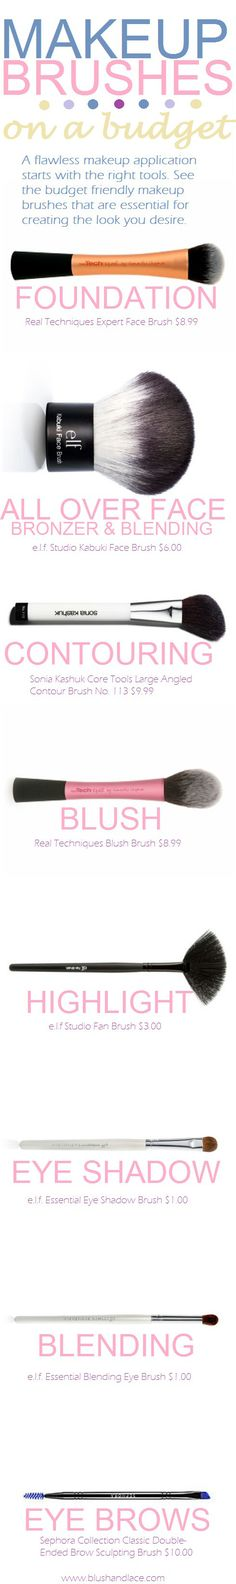 Makeup brushes for your whole face for under $50